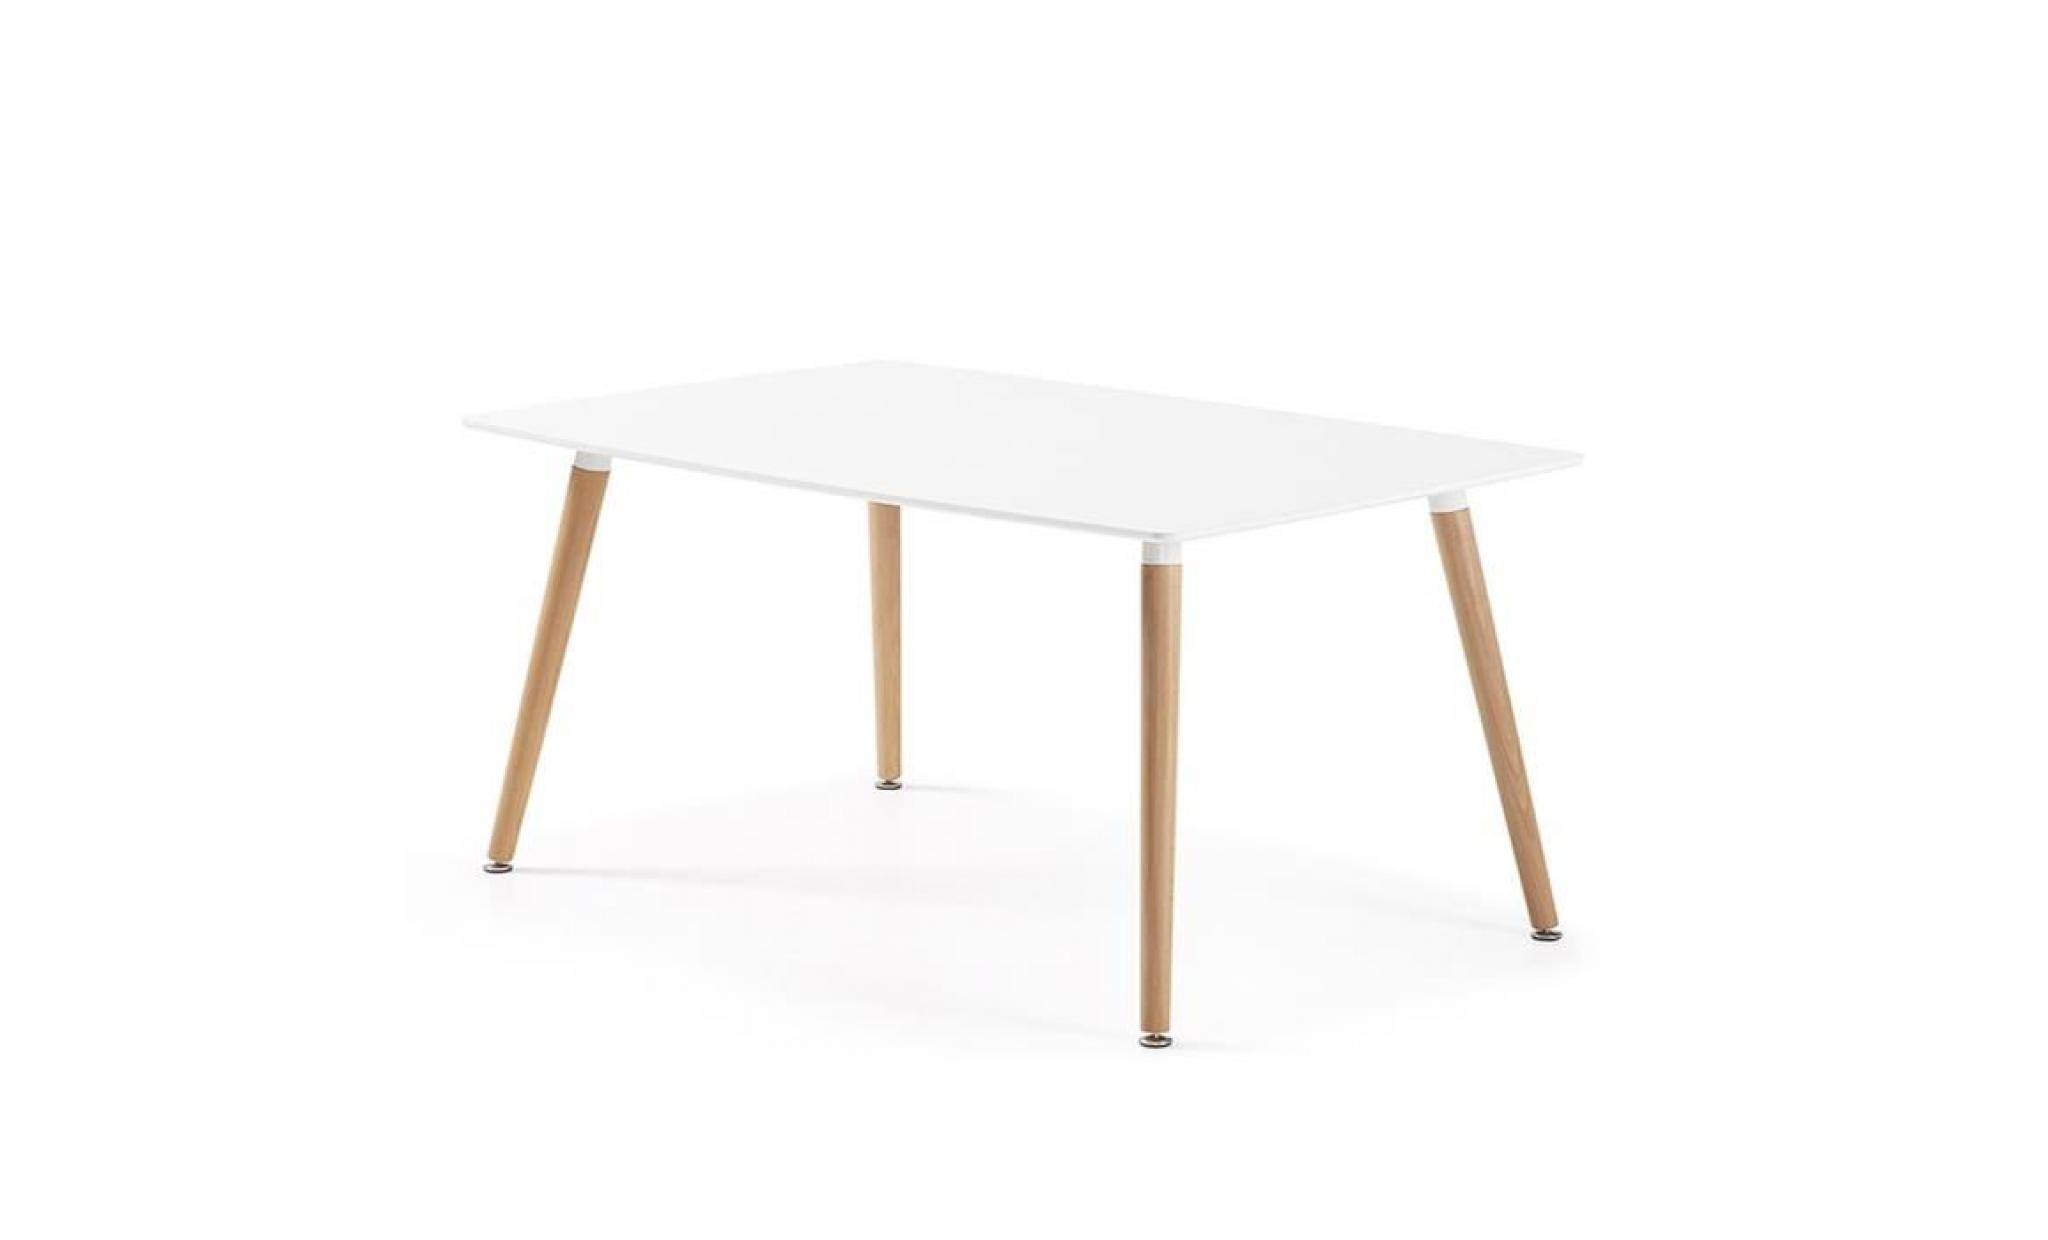 Table manger rectangulaire design blanche en bois laqu - Table en bois blanche ...